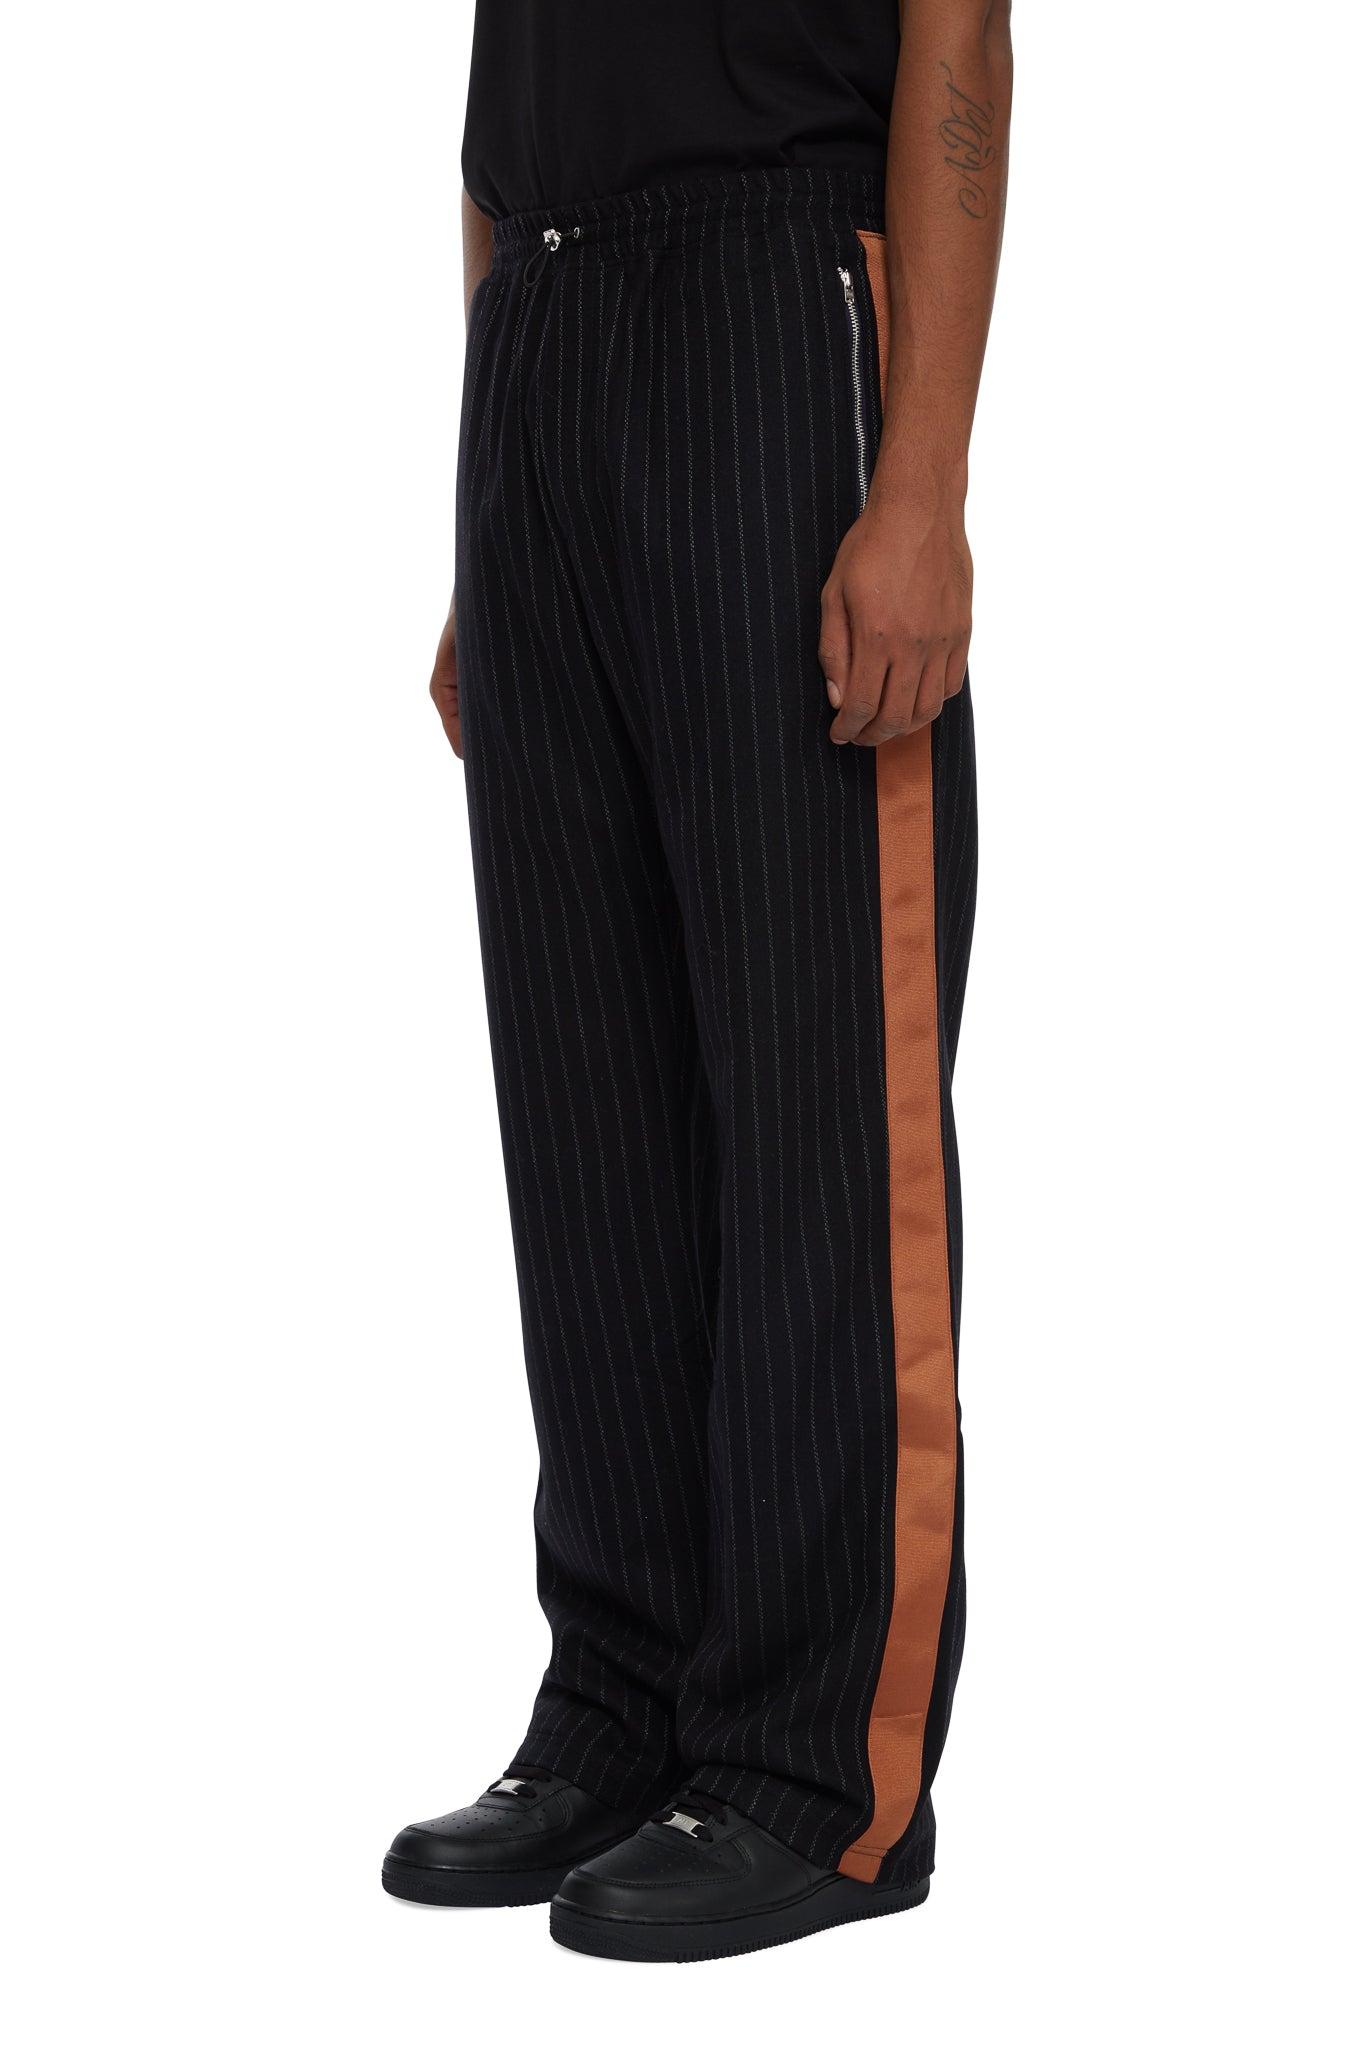 HTOWN, AHLUWALIA, AHLUWALIA KYLE TRACK PANTS, AHLUWALIA TRACK PANTS, AHLUWALIA MENSWEAR, HTOWN AHLUWALIA, AHLUWALIA GRANDAD TROUSER, WOOL STRIPED TRACK PANTS, GOLDEN RIBBON SIDE DETAIL, WOOL STRIPE, WOOL TROUSER, LONDON DESIGNER, LONDON BOUTIQUE, AUTUMN WINTER 2020, AW20, LUXURY DESIGNER, LUXURY FASHION, MEN'S LUXURY TROUSER, LUXURY TRACK PANTS, MENS TROUSER, MENS TRACK PANT